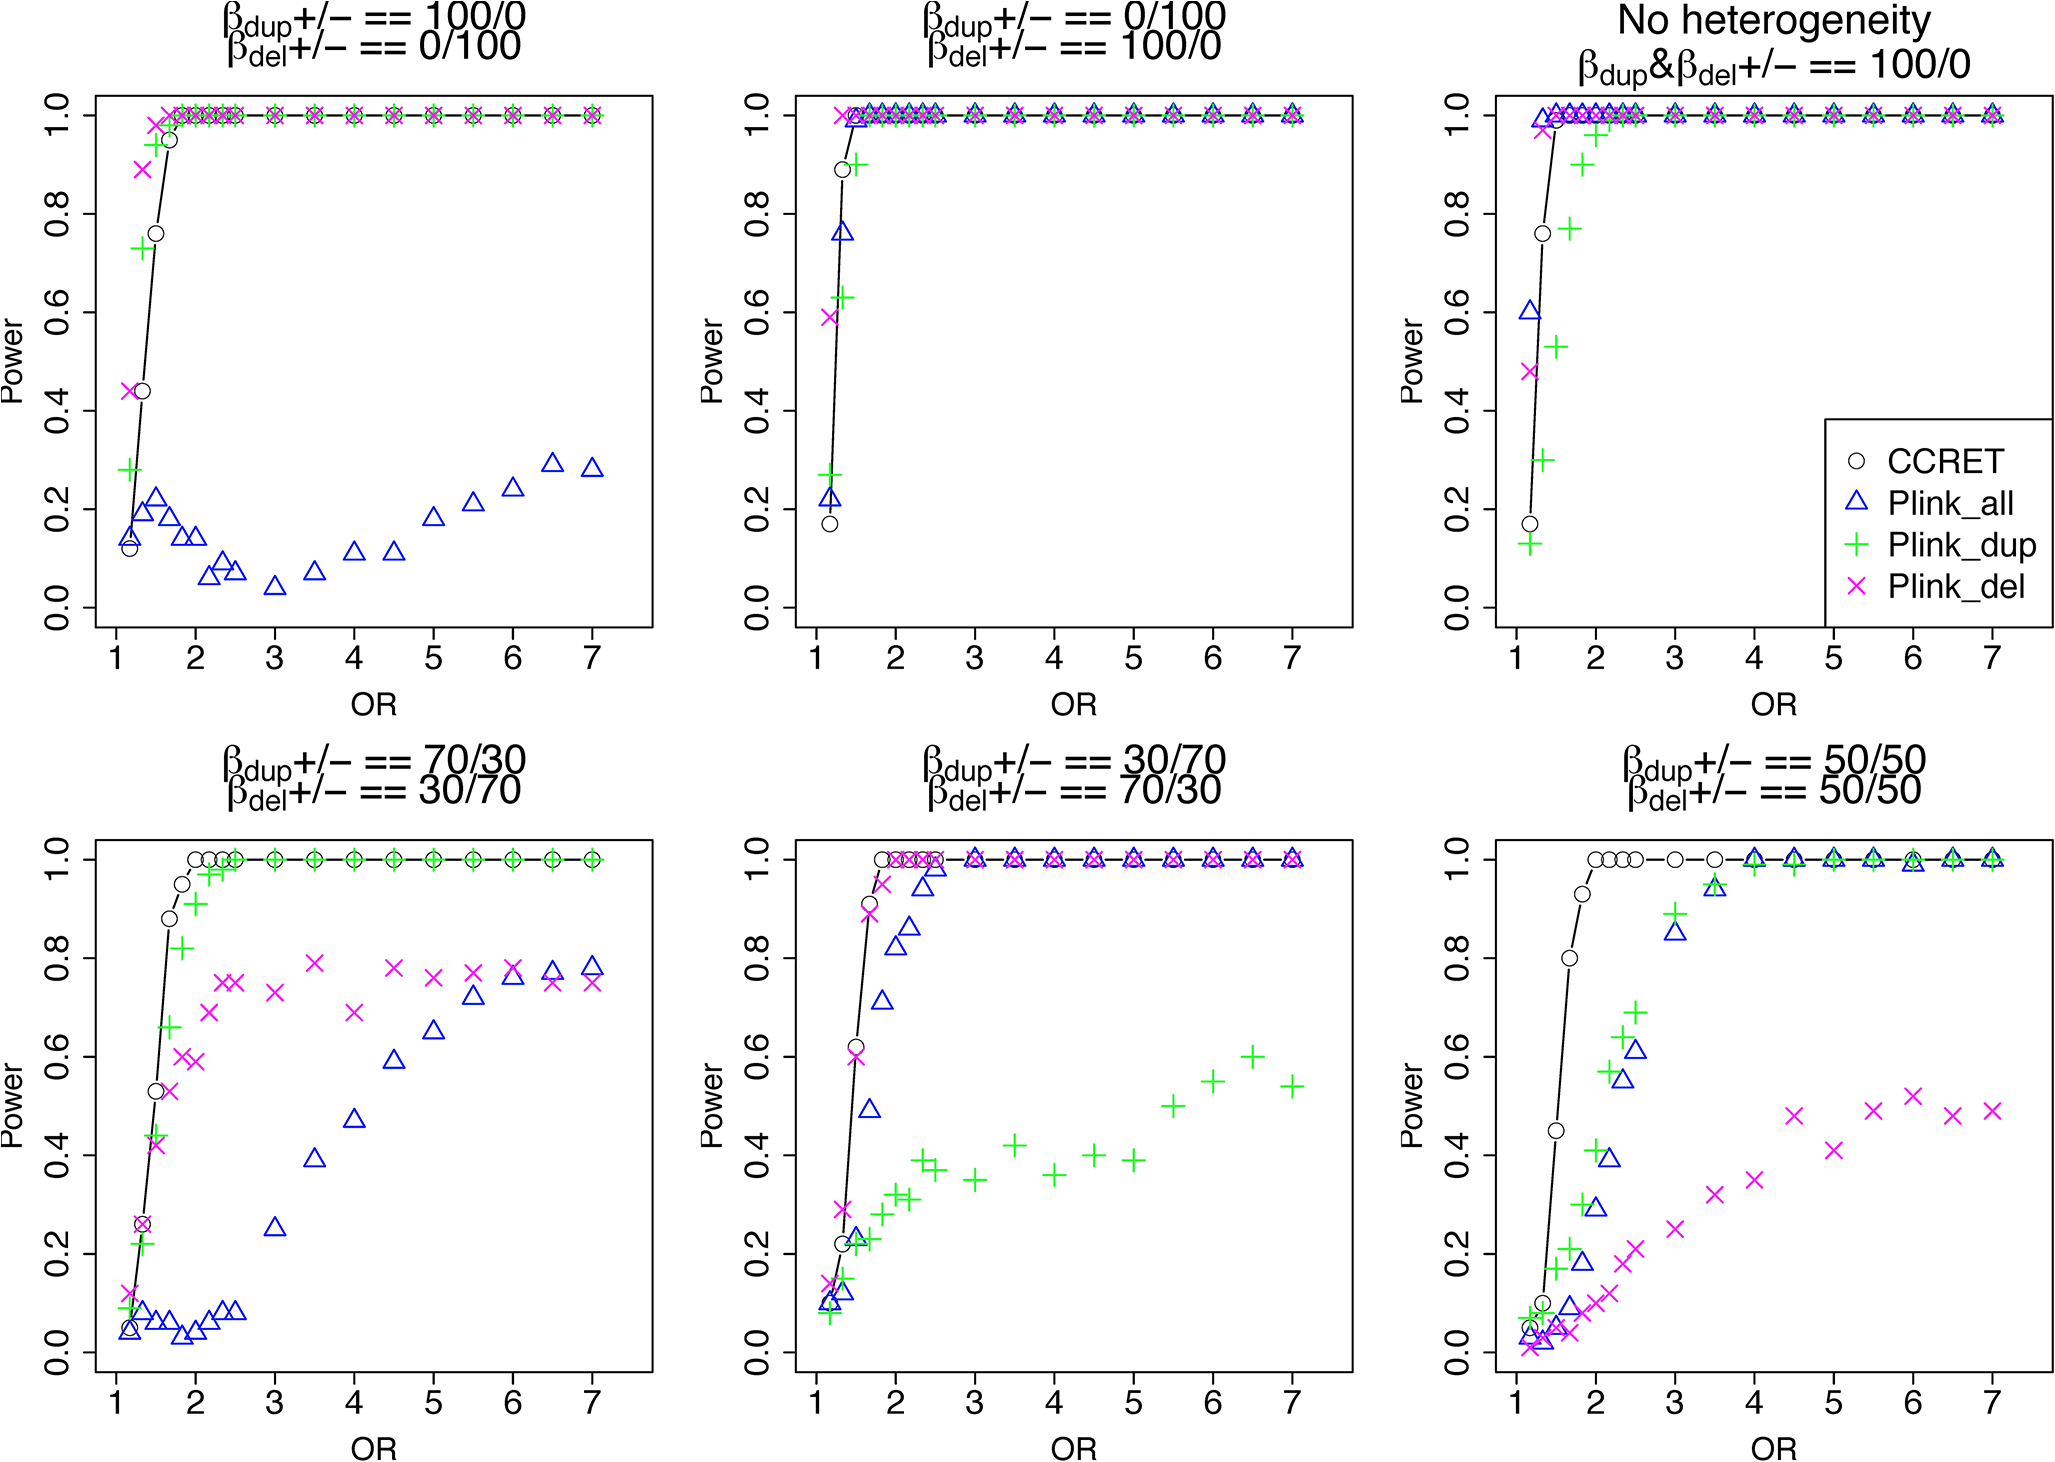 Power comparison between CCRET and PLINK 2-sided tests for simulation I-A: between-locus heterogeneity of the dosage simulation, under 6 heterogeneity models as in <em class=&quot;ref&quot;>Fig 3</em>.